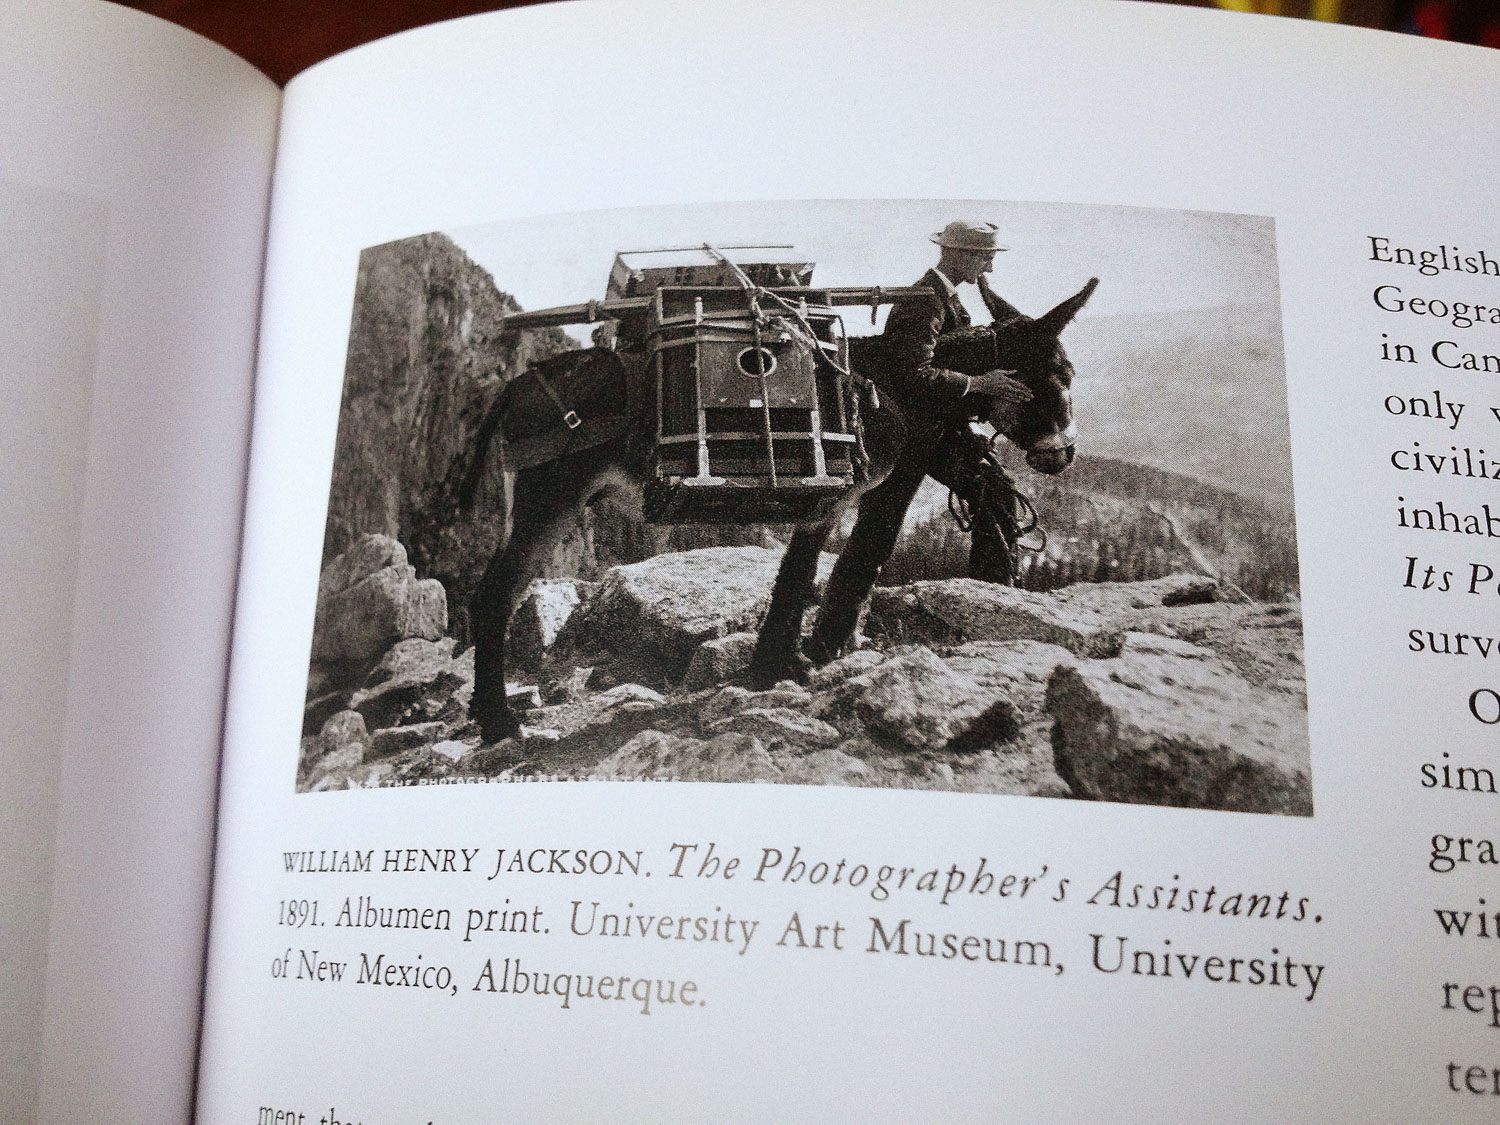 Beaumont Newhall's History of Photography (page 103)